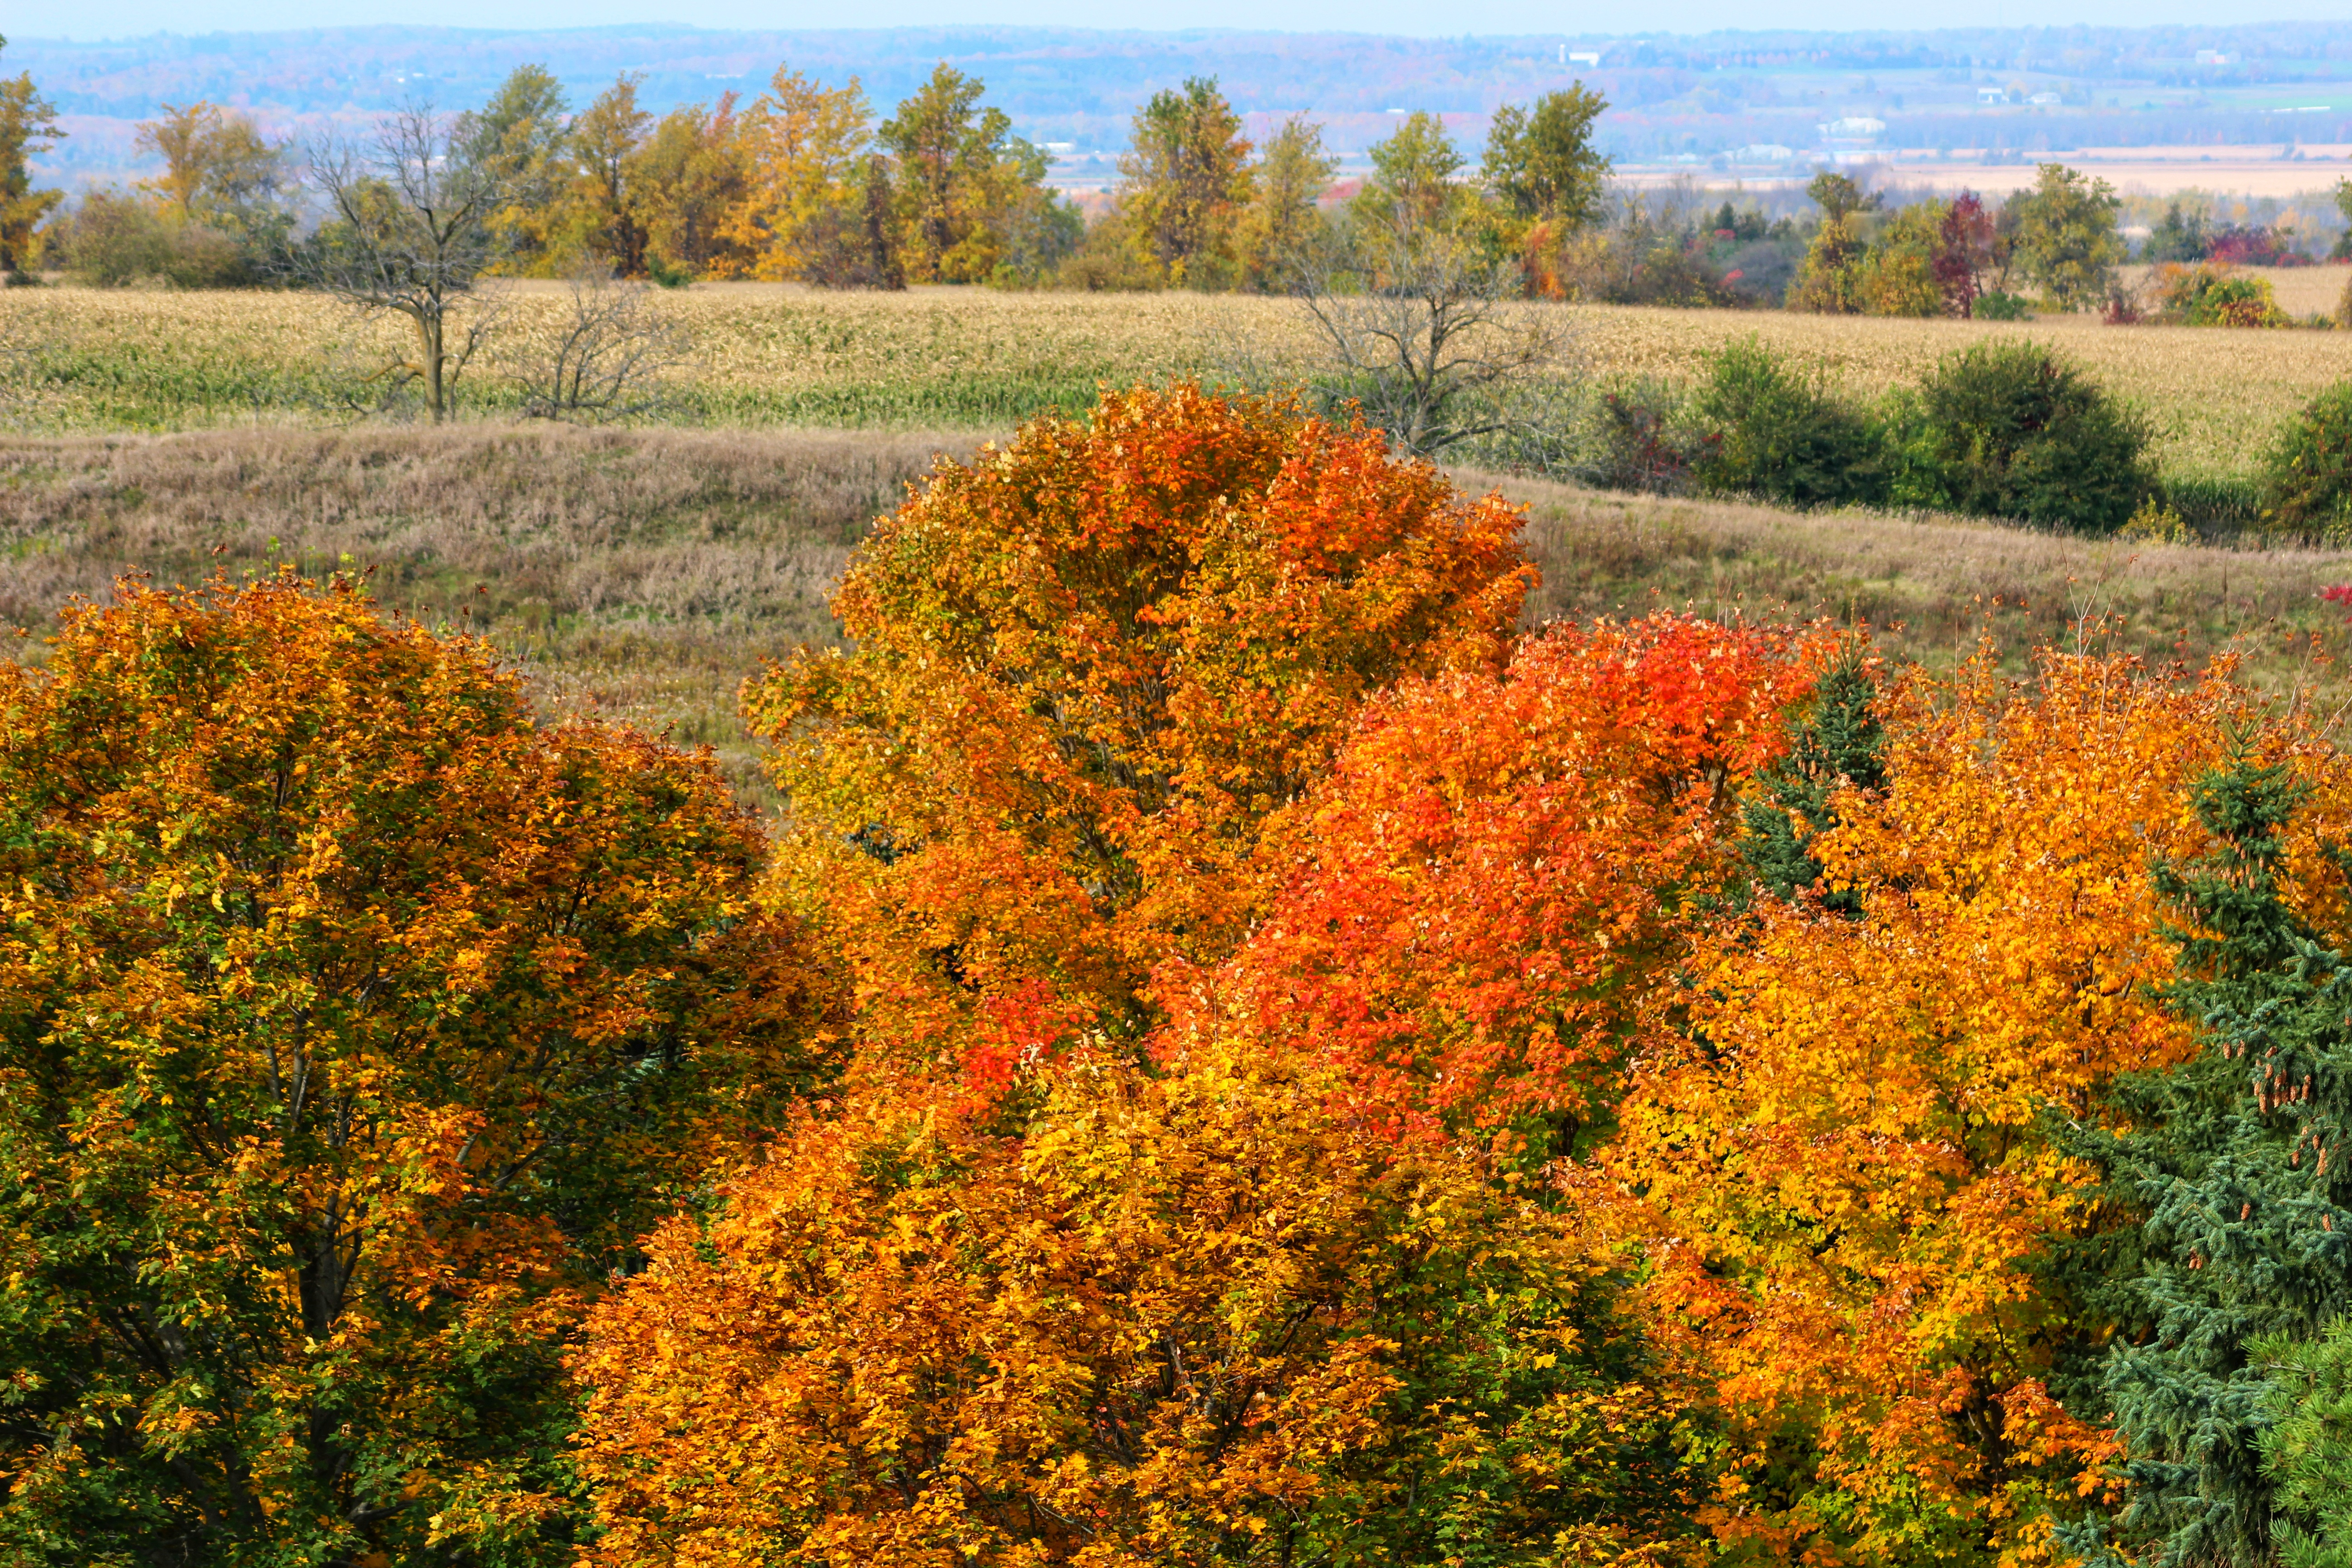 Autumn leaves in rural Ontario, Autumn, Colors, Fall, Field, HQ Photo